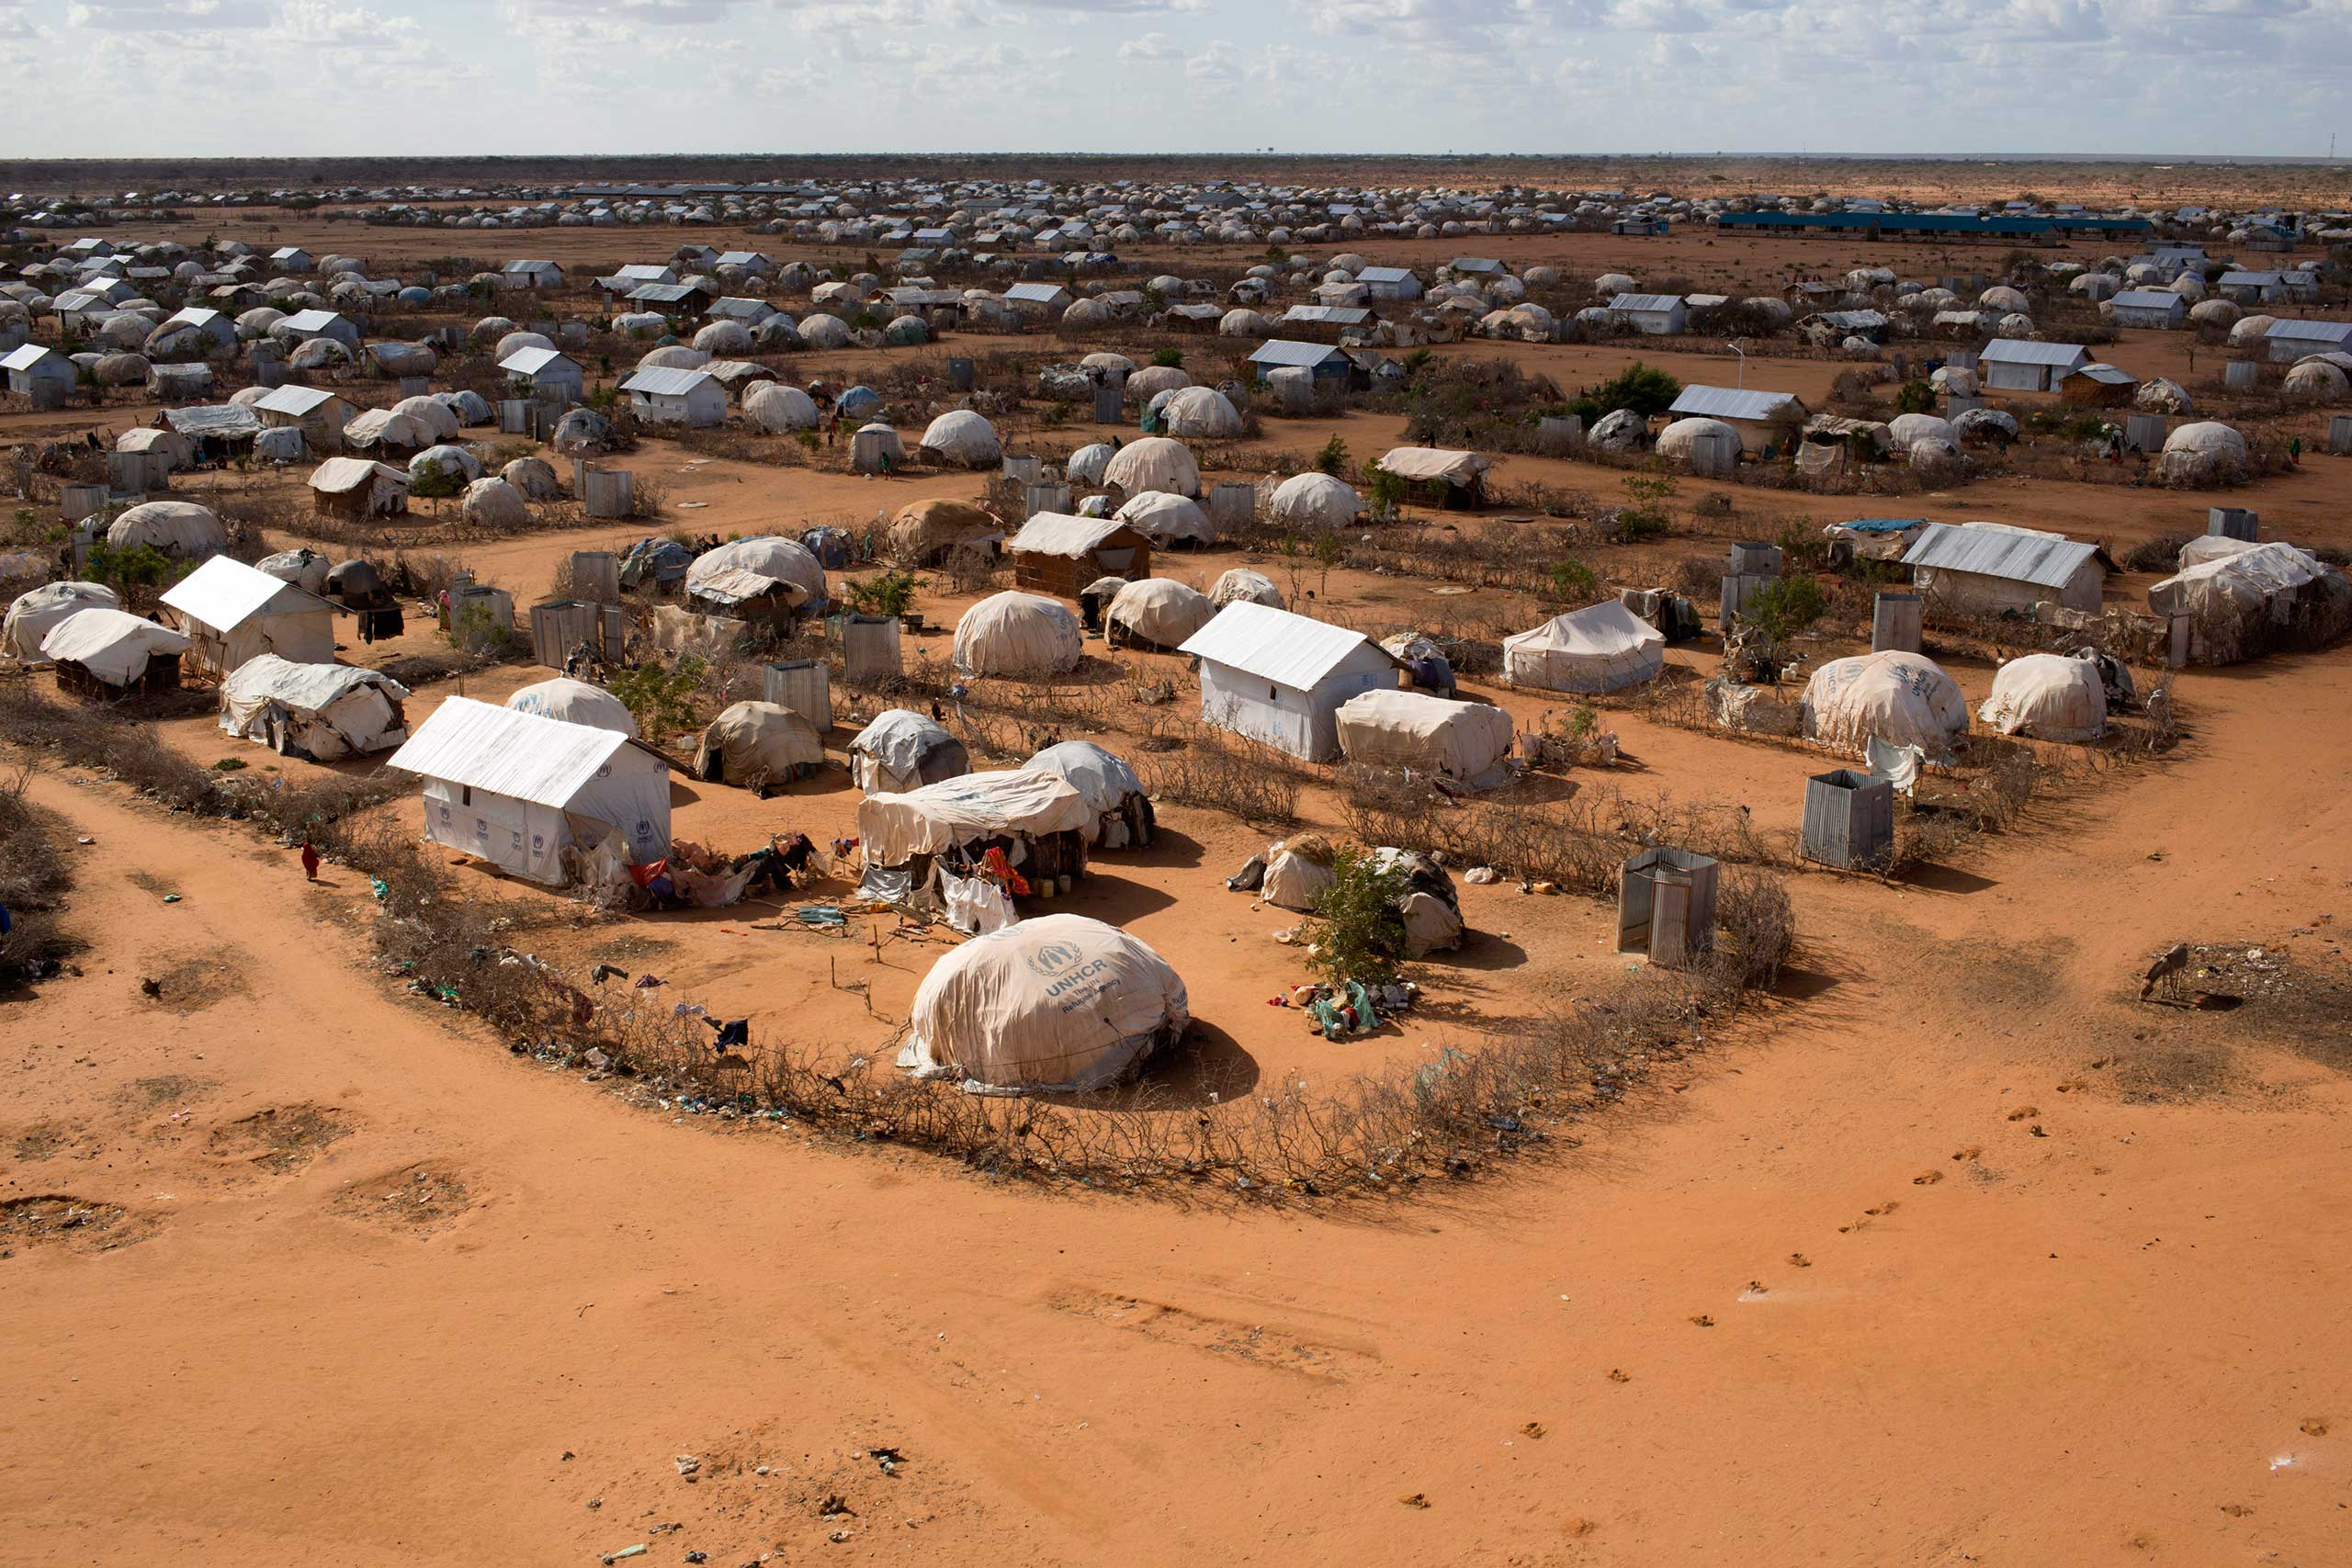 An aerial view shows an extension of the Ifo camp, one of the several refugee settlements in Dadaab, Garissa County, northeastern Kenya in 2013.